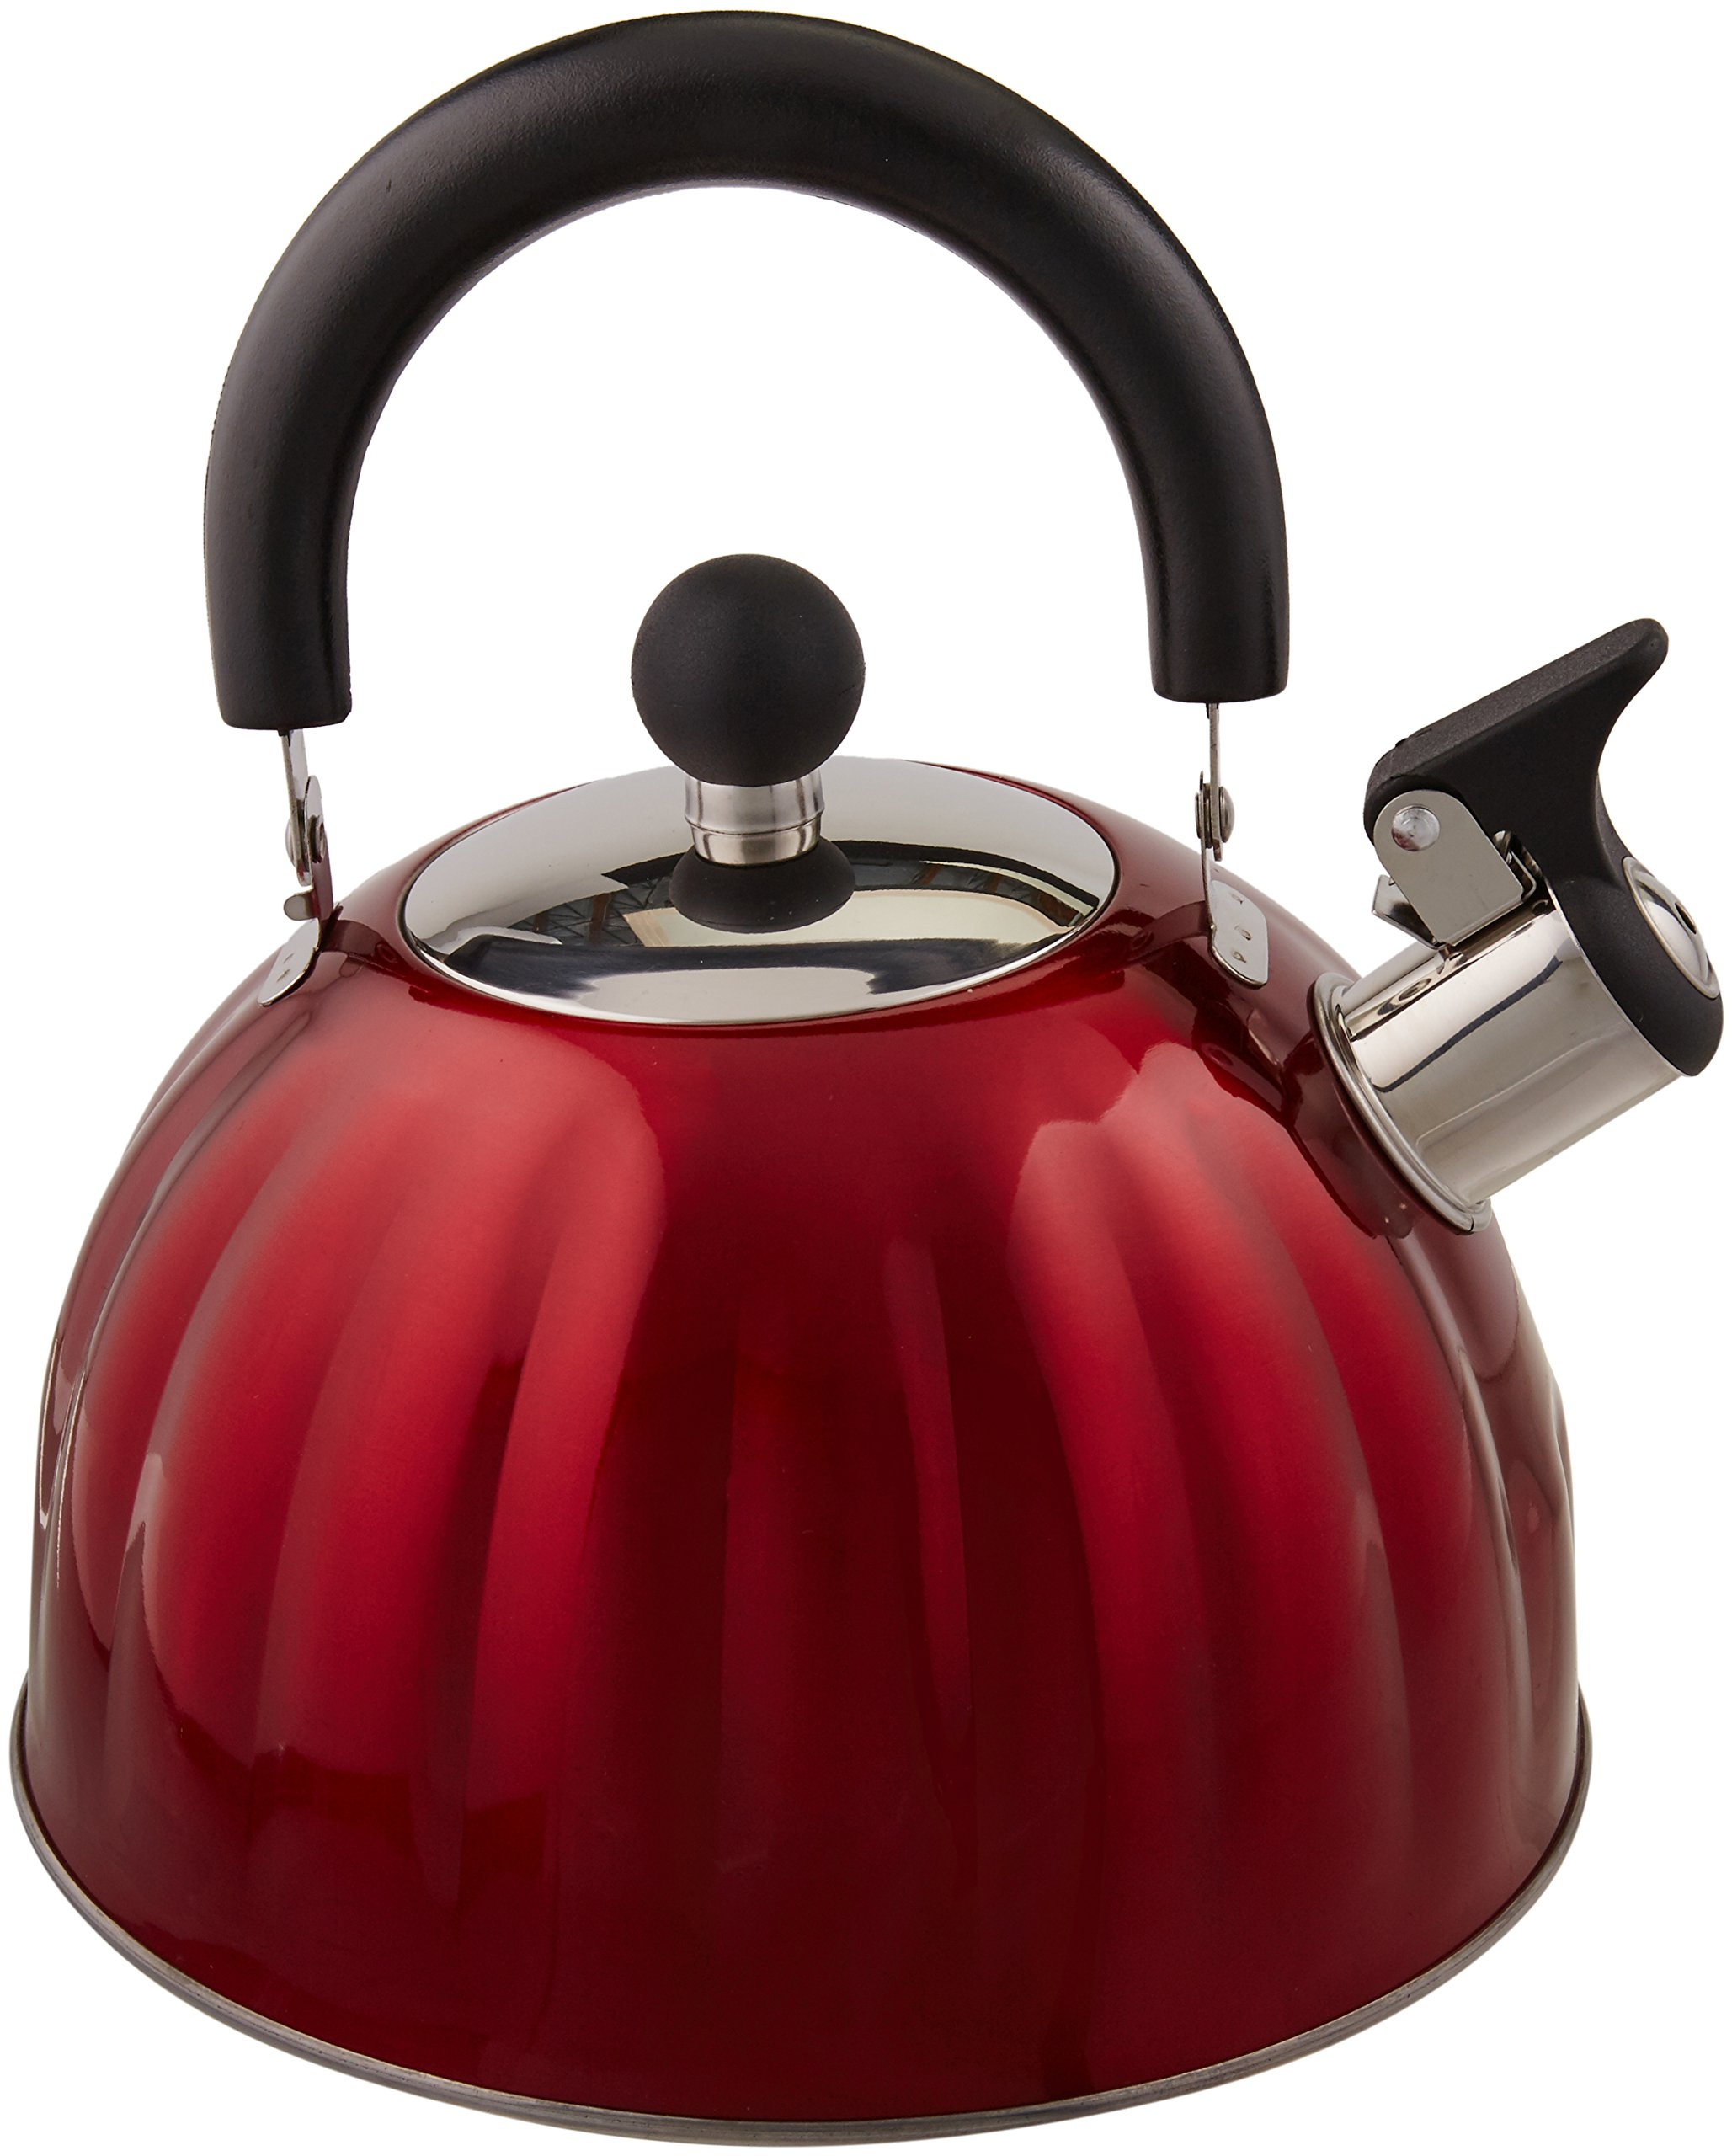 Mr. Coffee 91414.02 Twining 2.1 Quart Pumpkin Shaped Stainless Steel Whistling Tea Kettle, Metallic Red